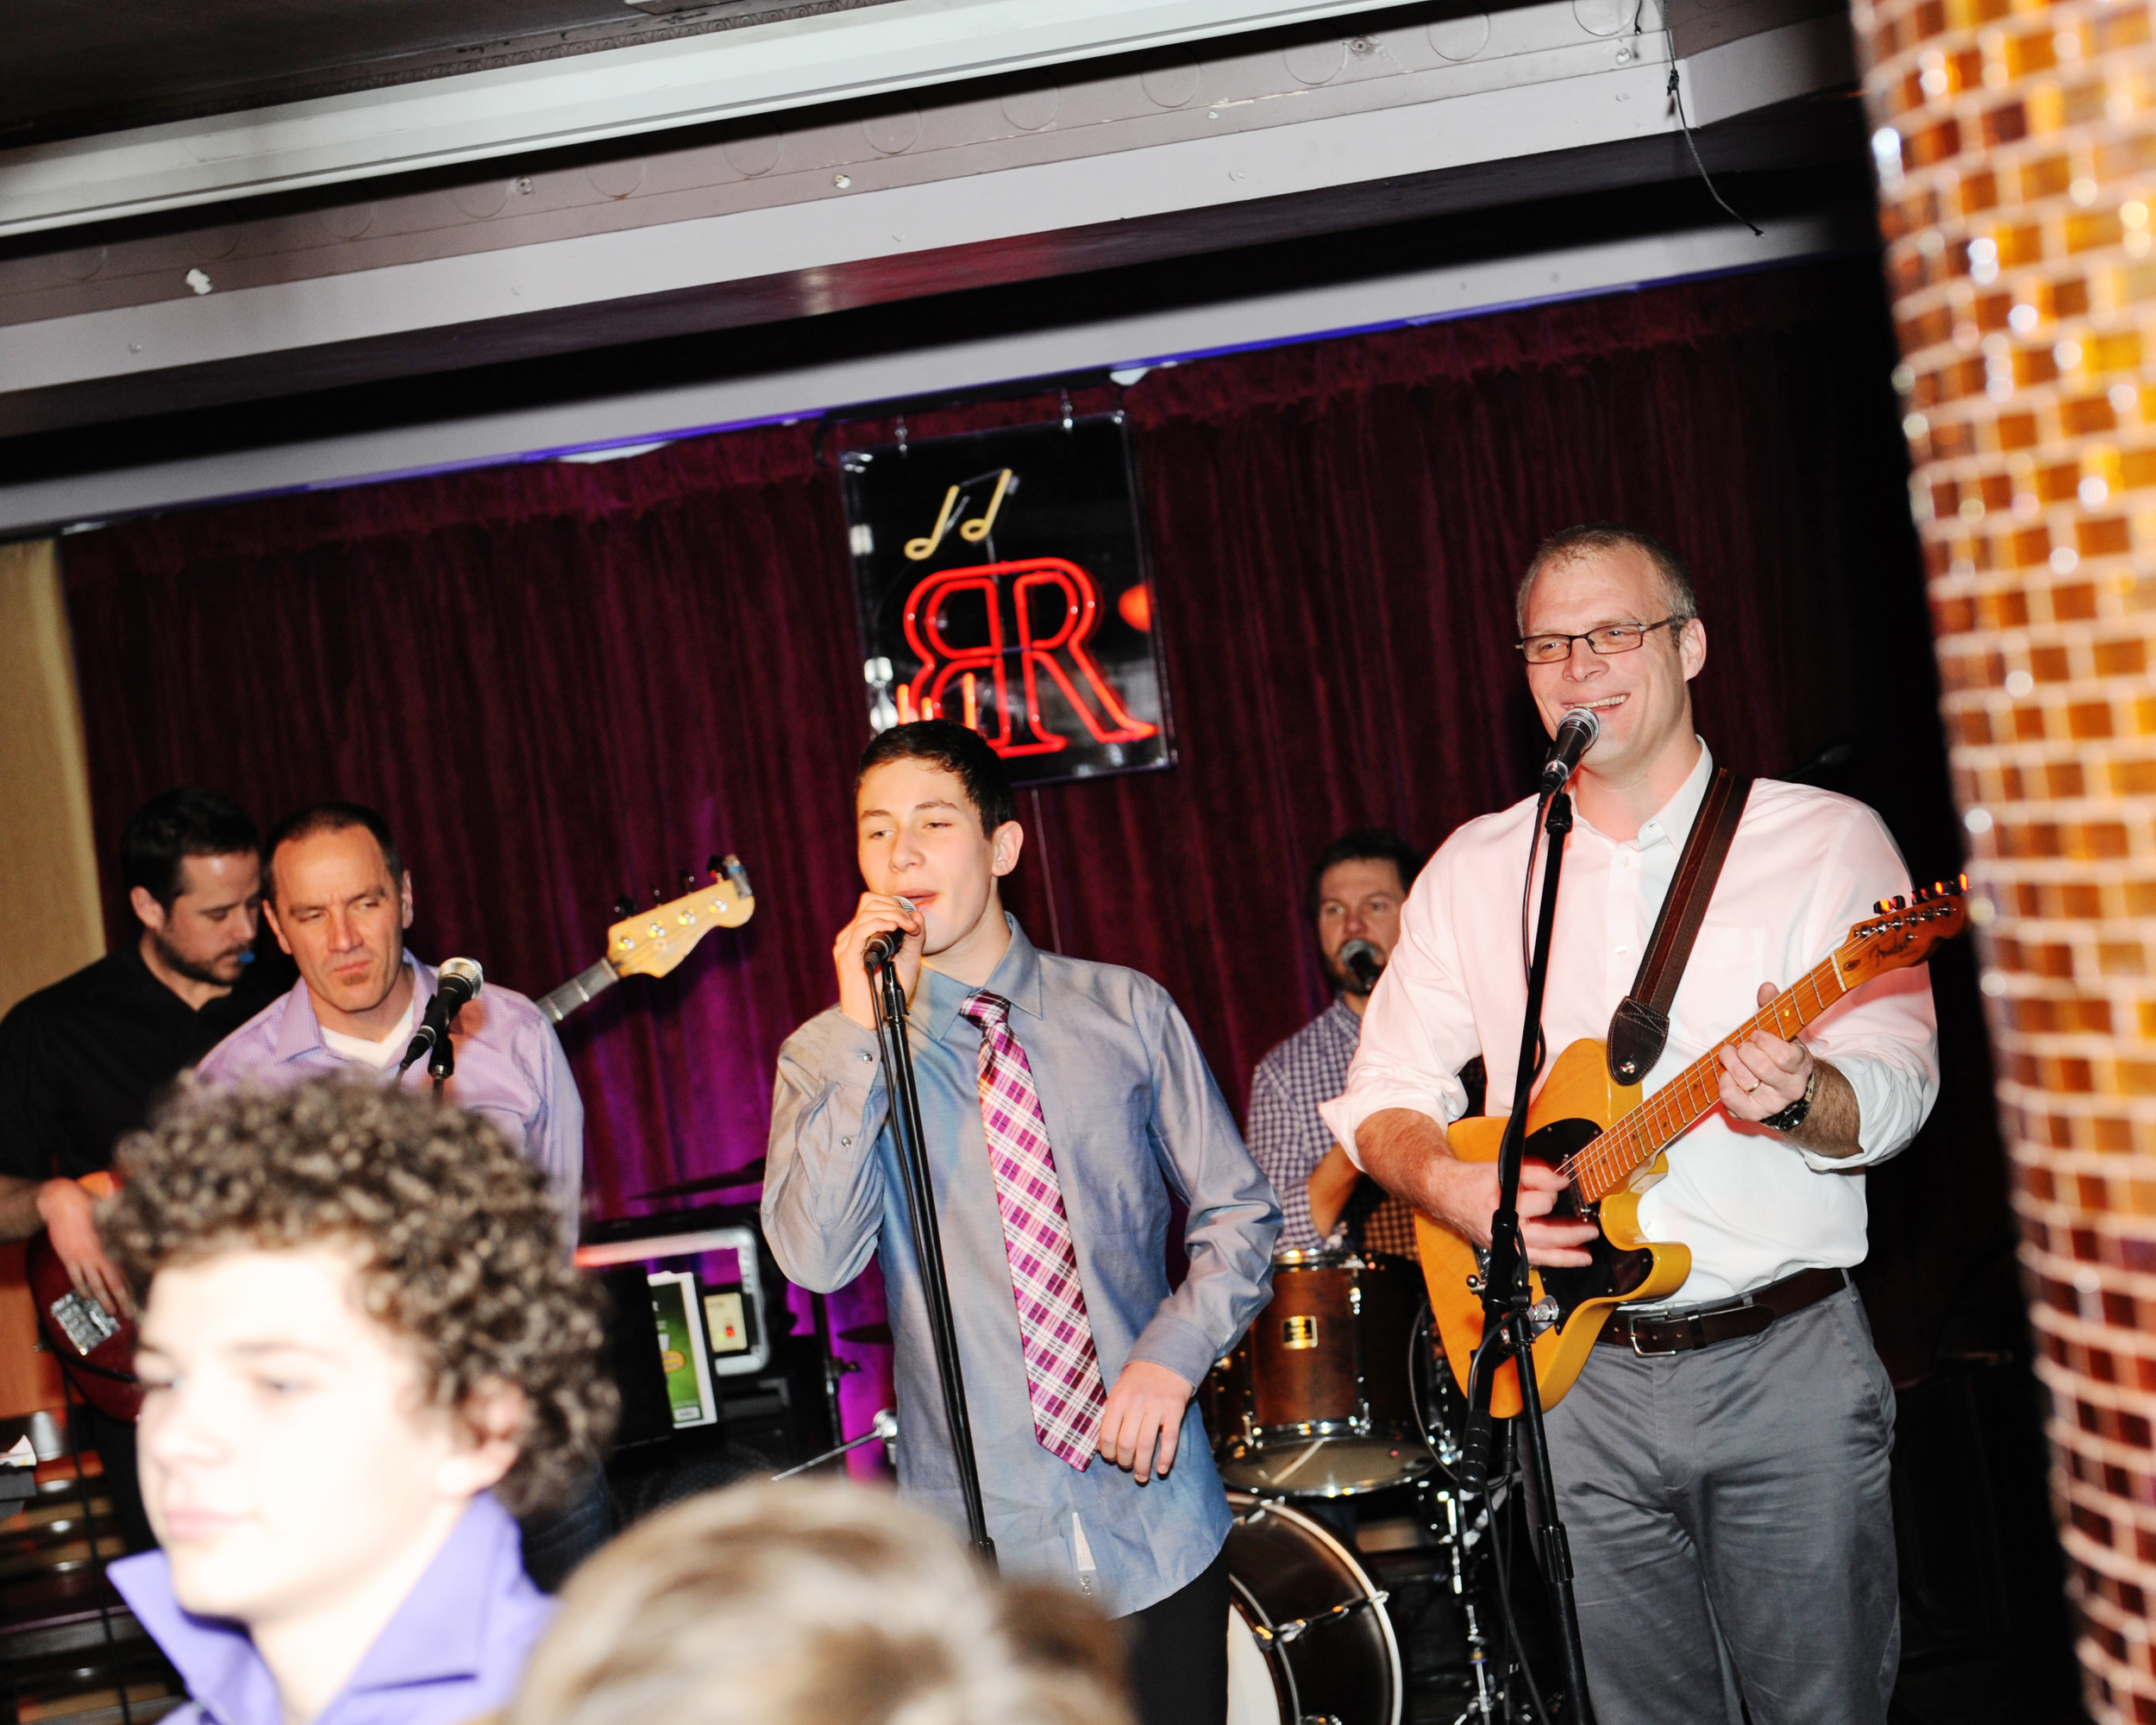 Bar Mitzvah'd lad rockin' with the band. Photo courtesy of  g-gphoto.com .